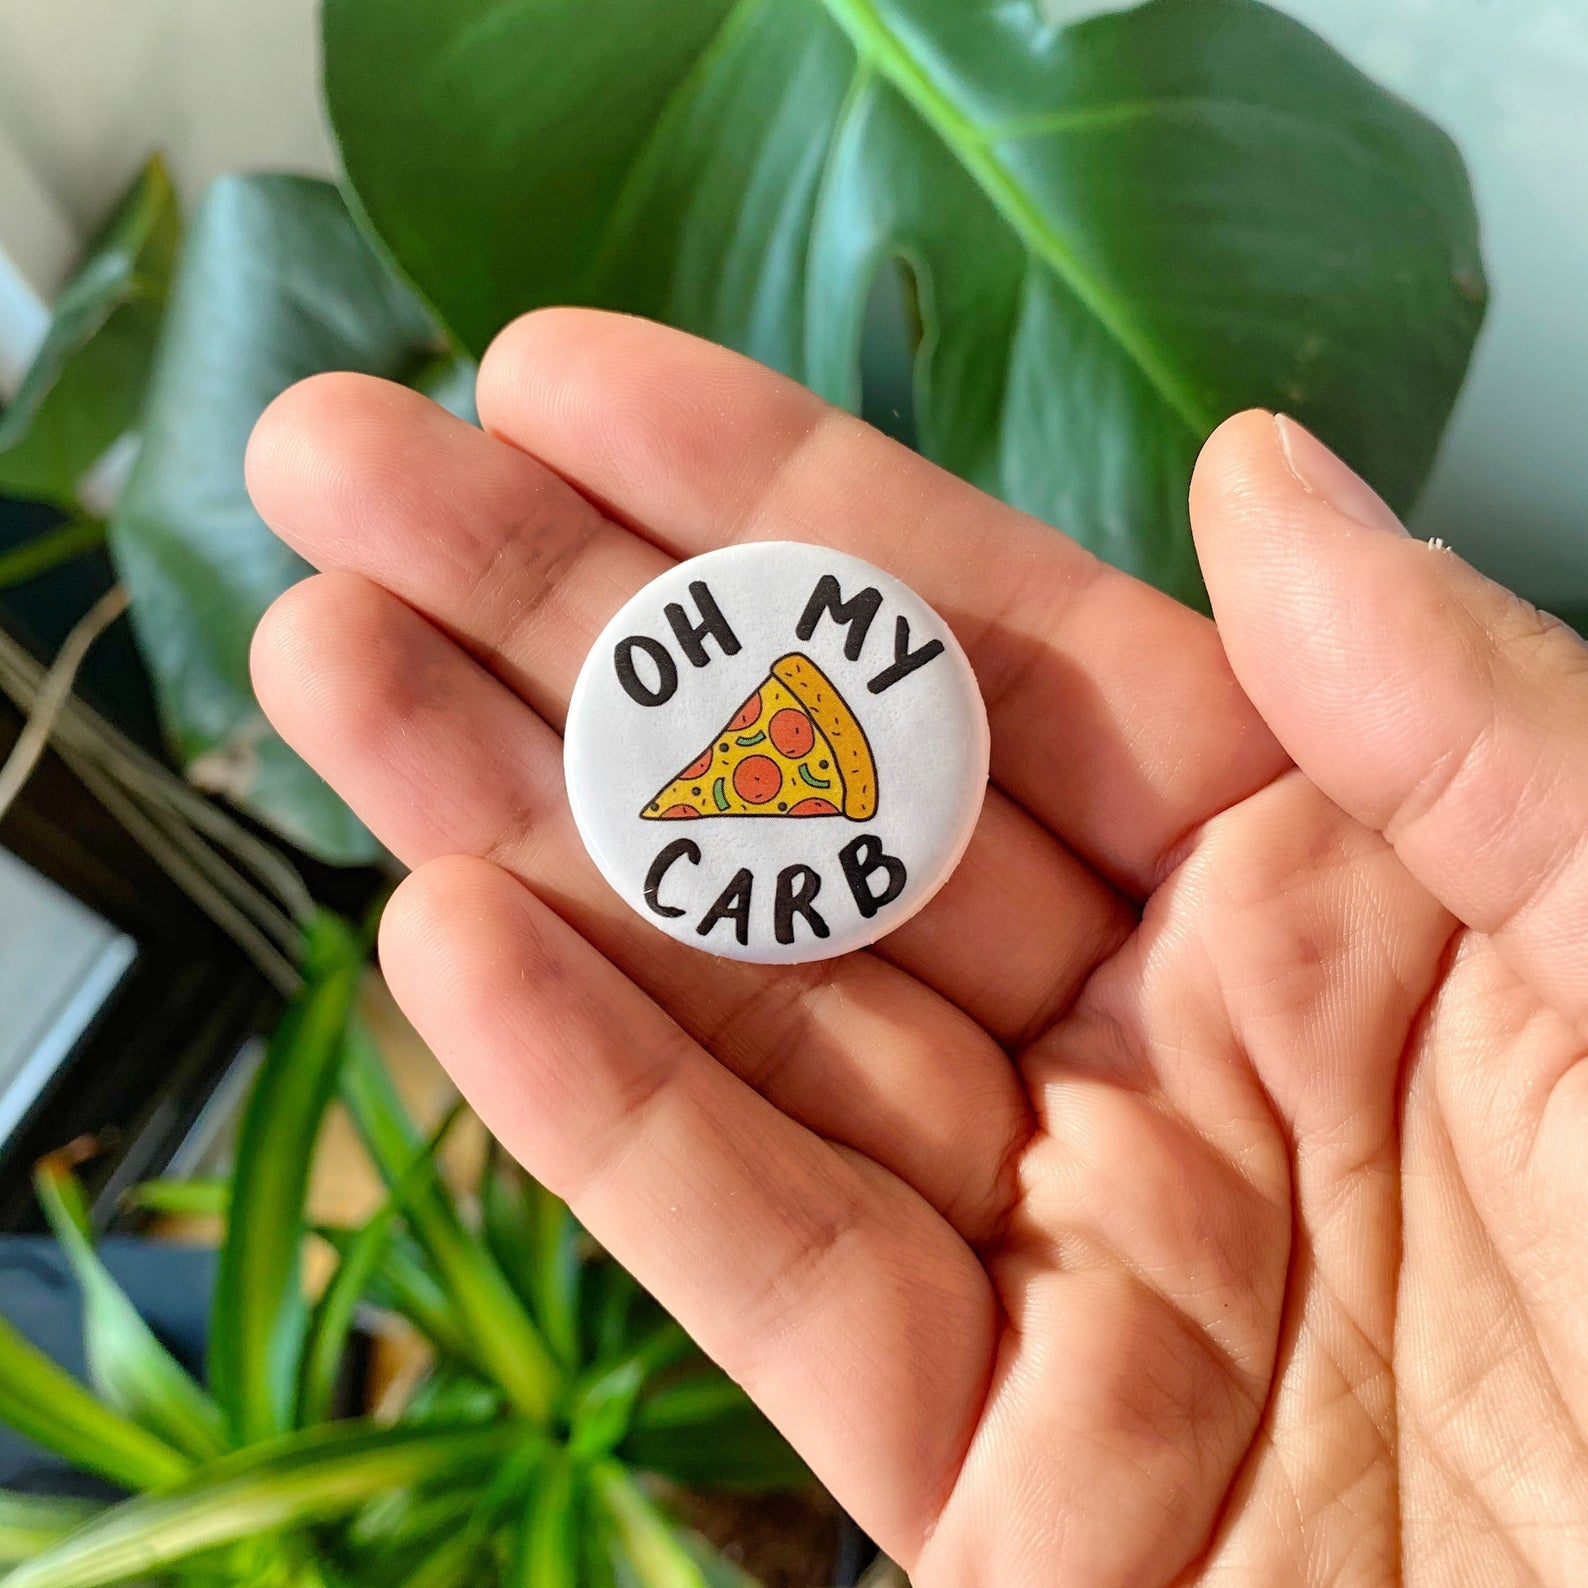 Oh My Carb - Funny Pizza Button